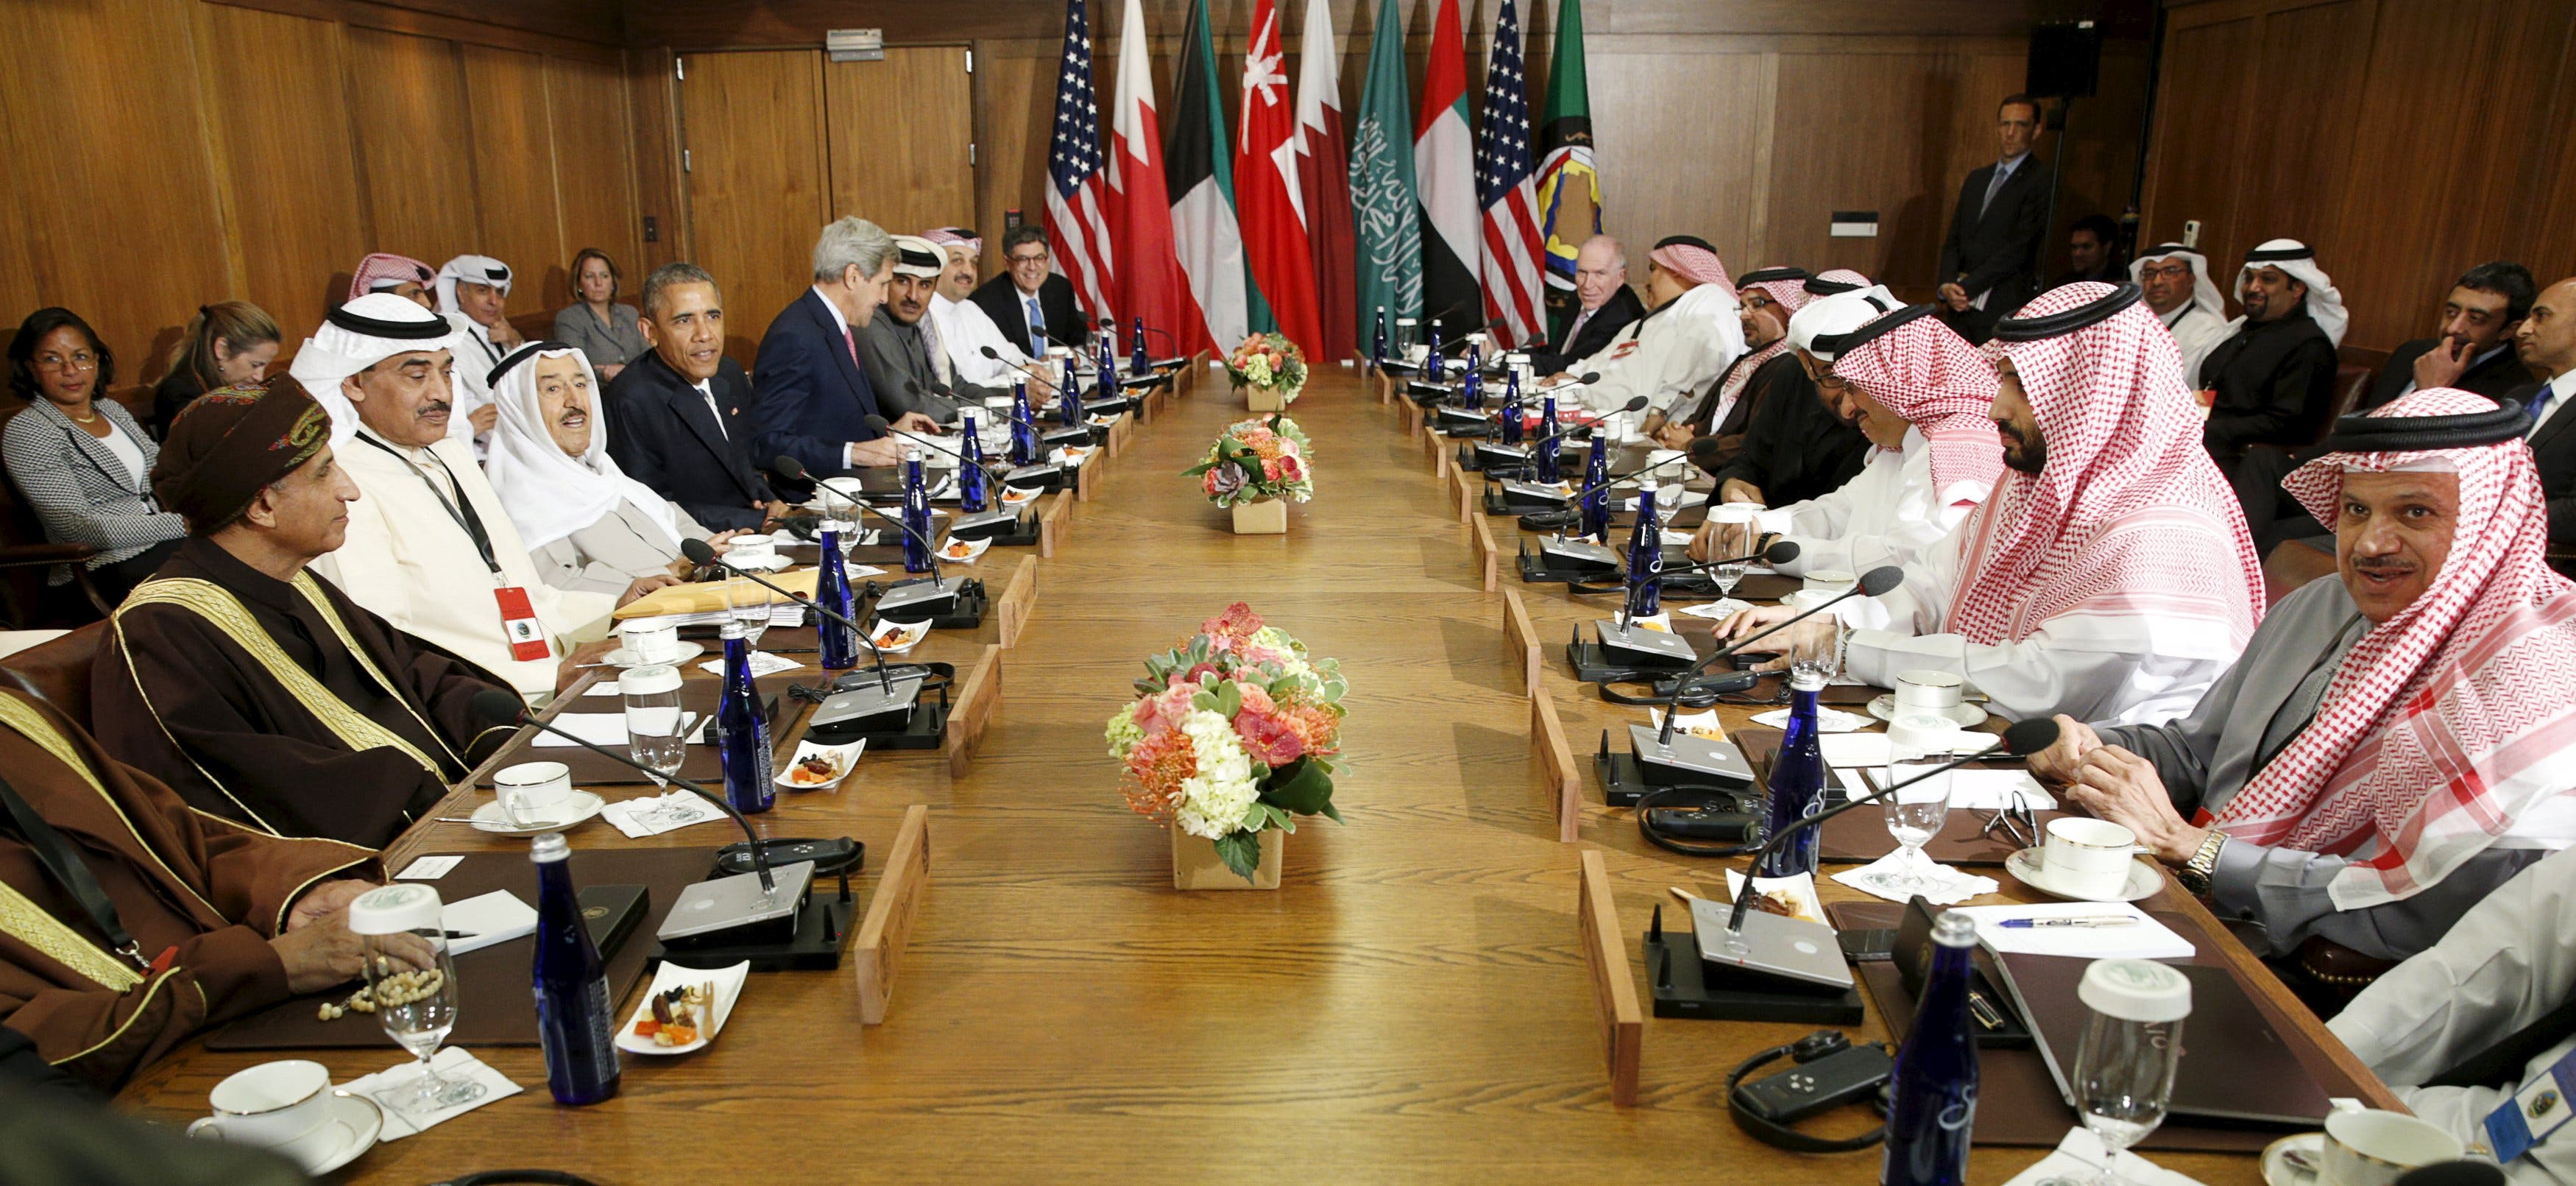 Obama hosts working session of six-nation Gulf Cooperation Council at Camp David in Maryland. (Reuters)